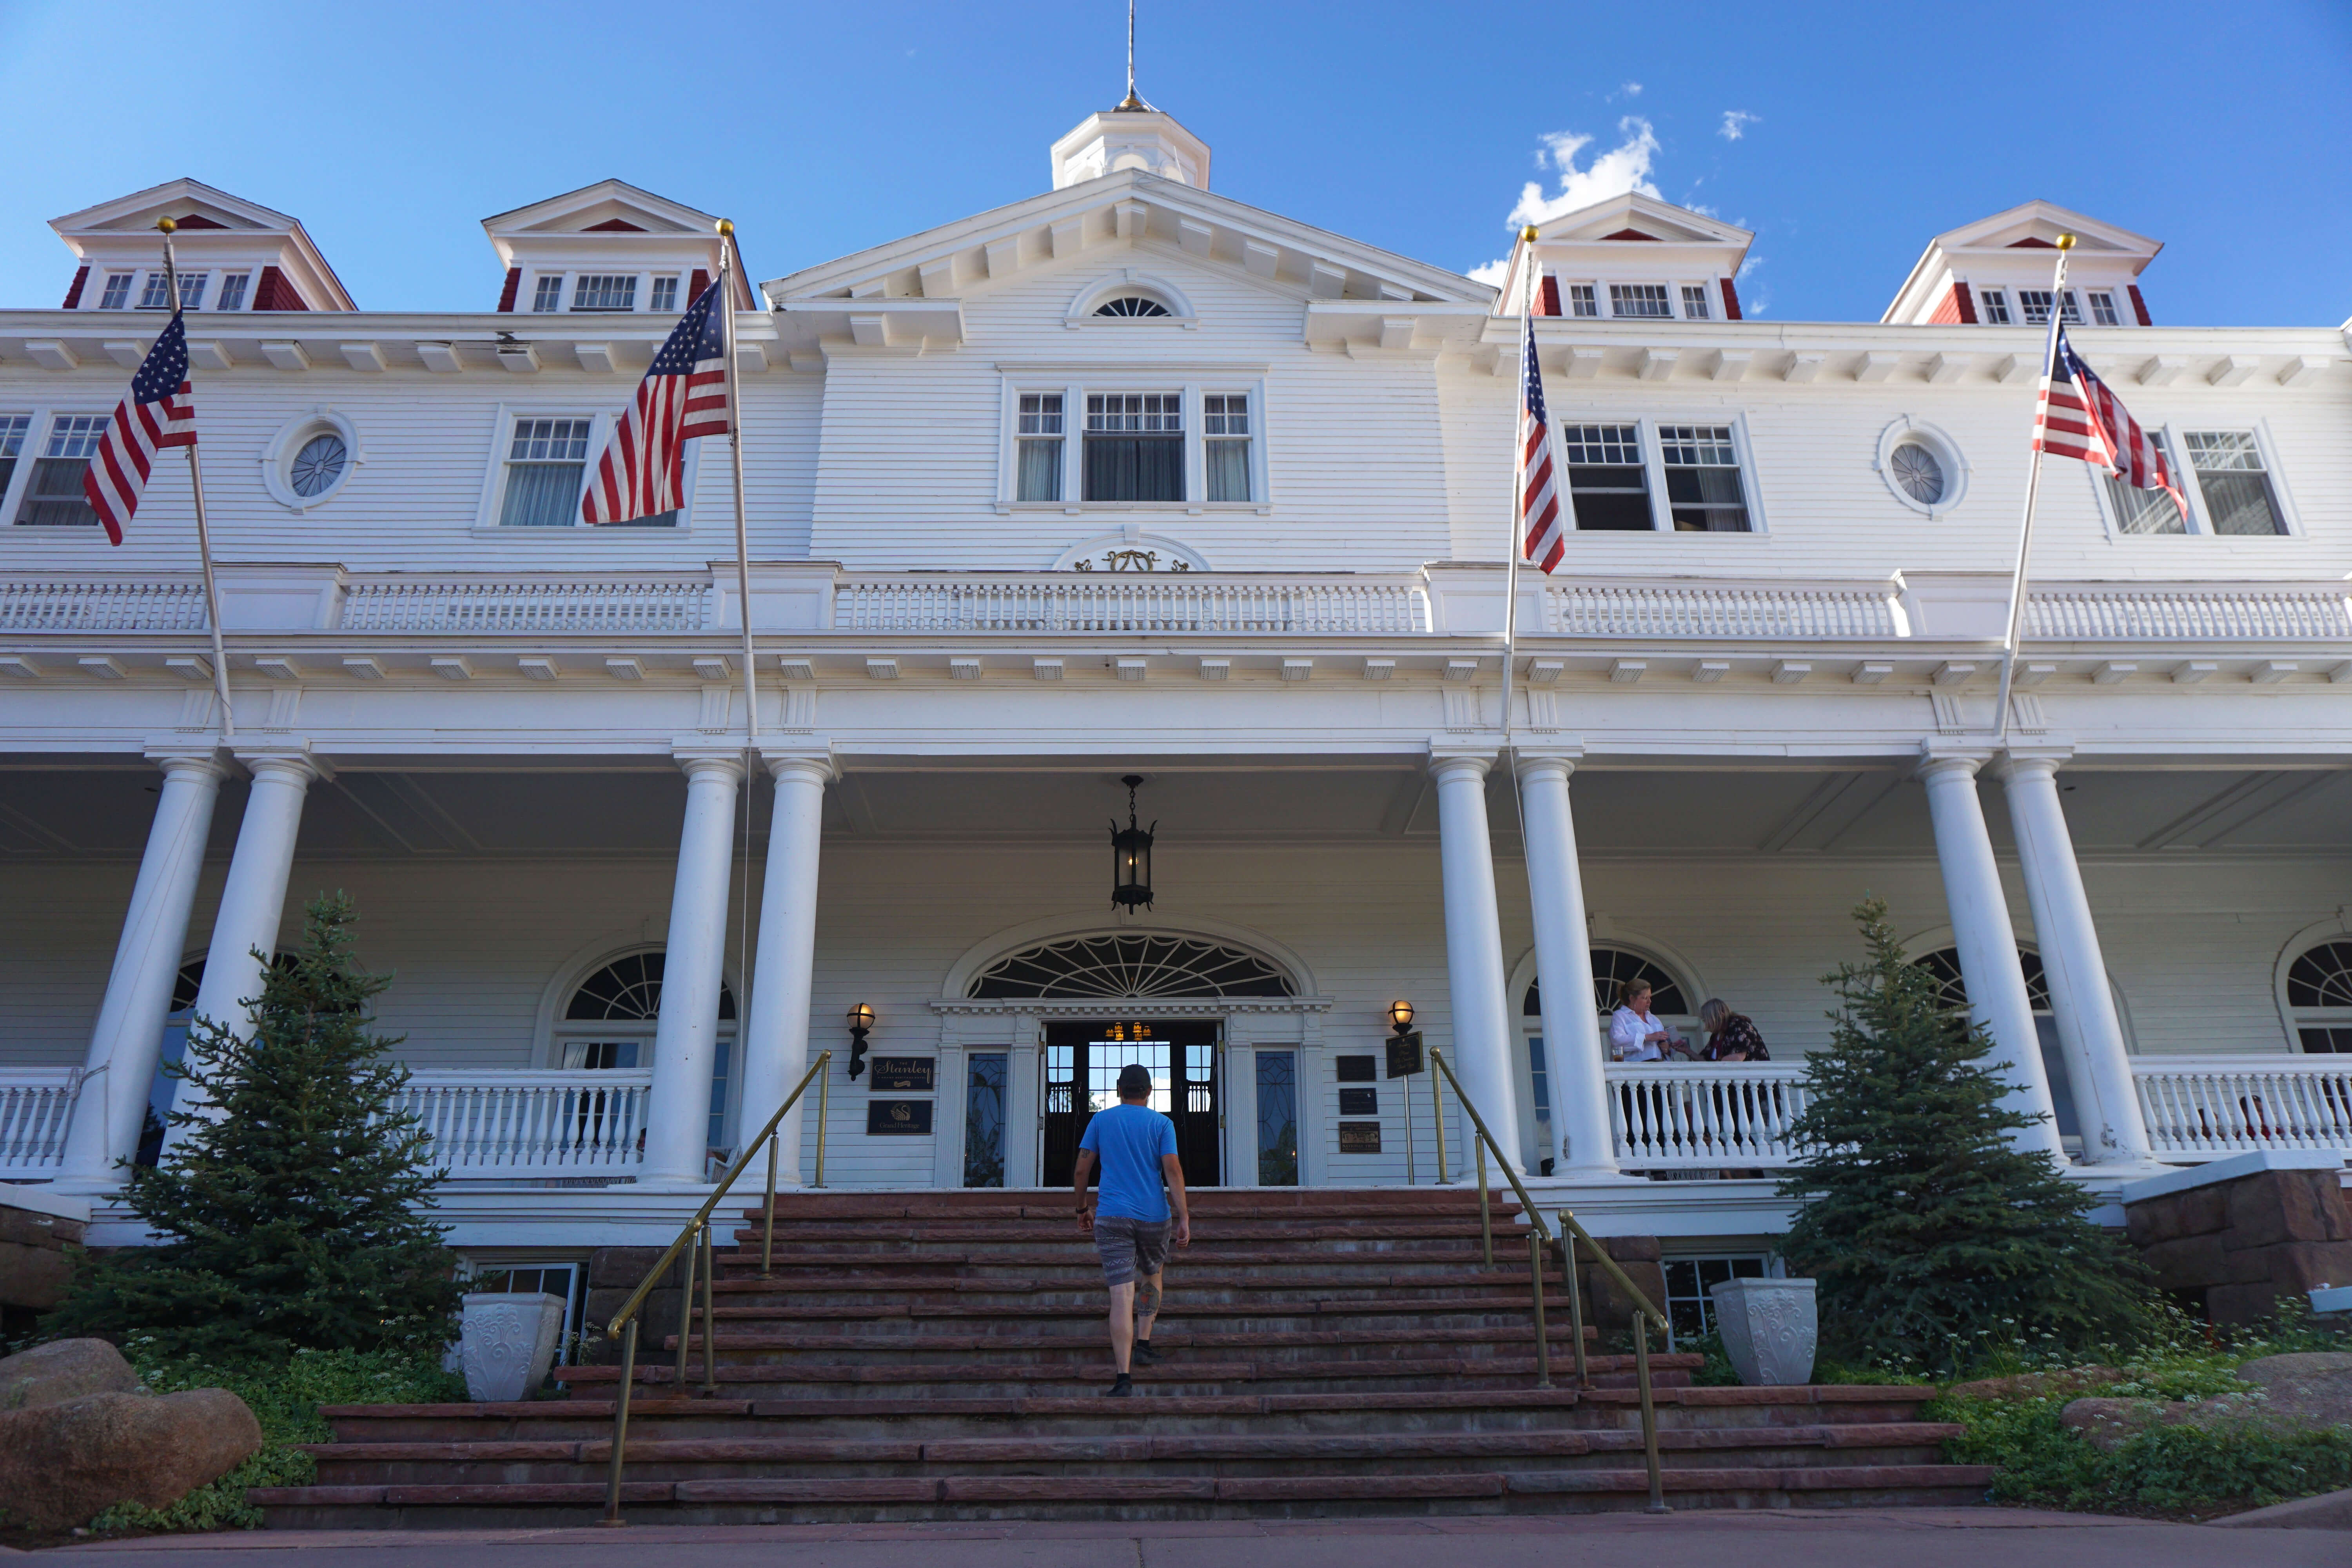 Ron walking up the front stairs of The Stanley Hotel